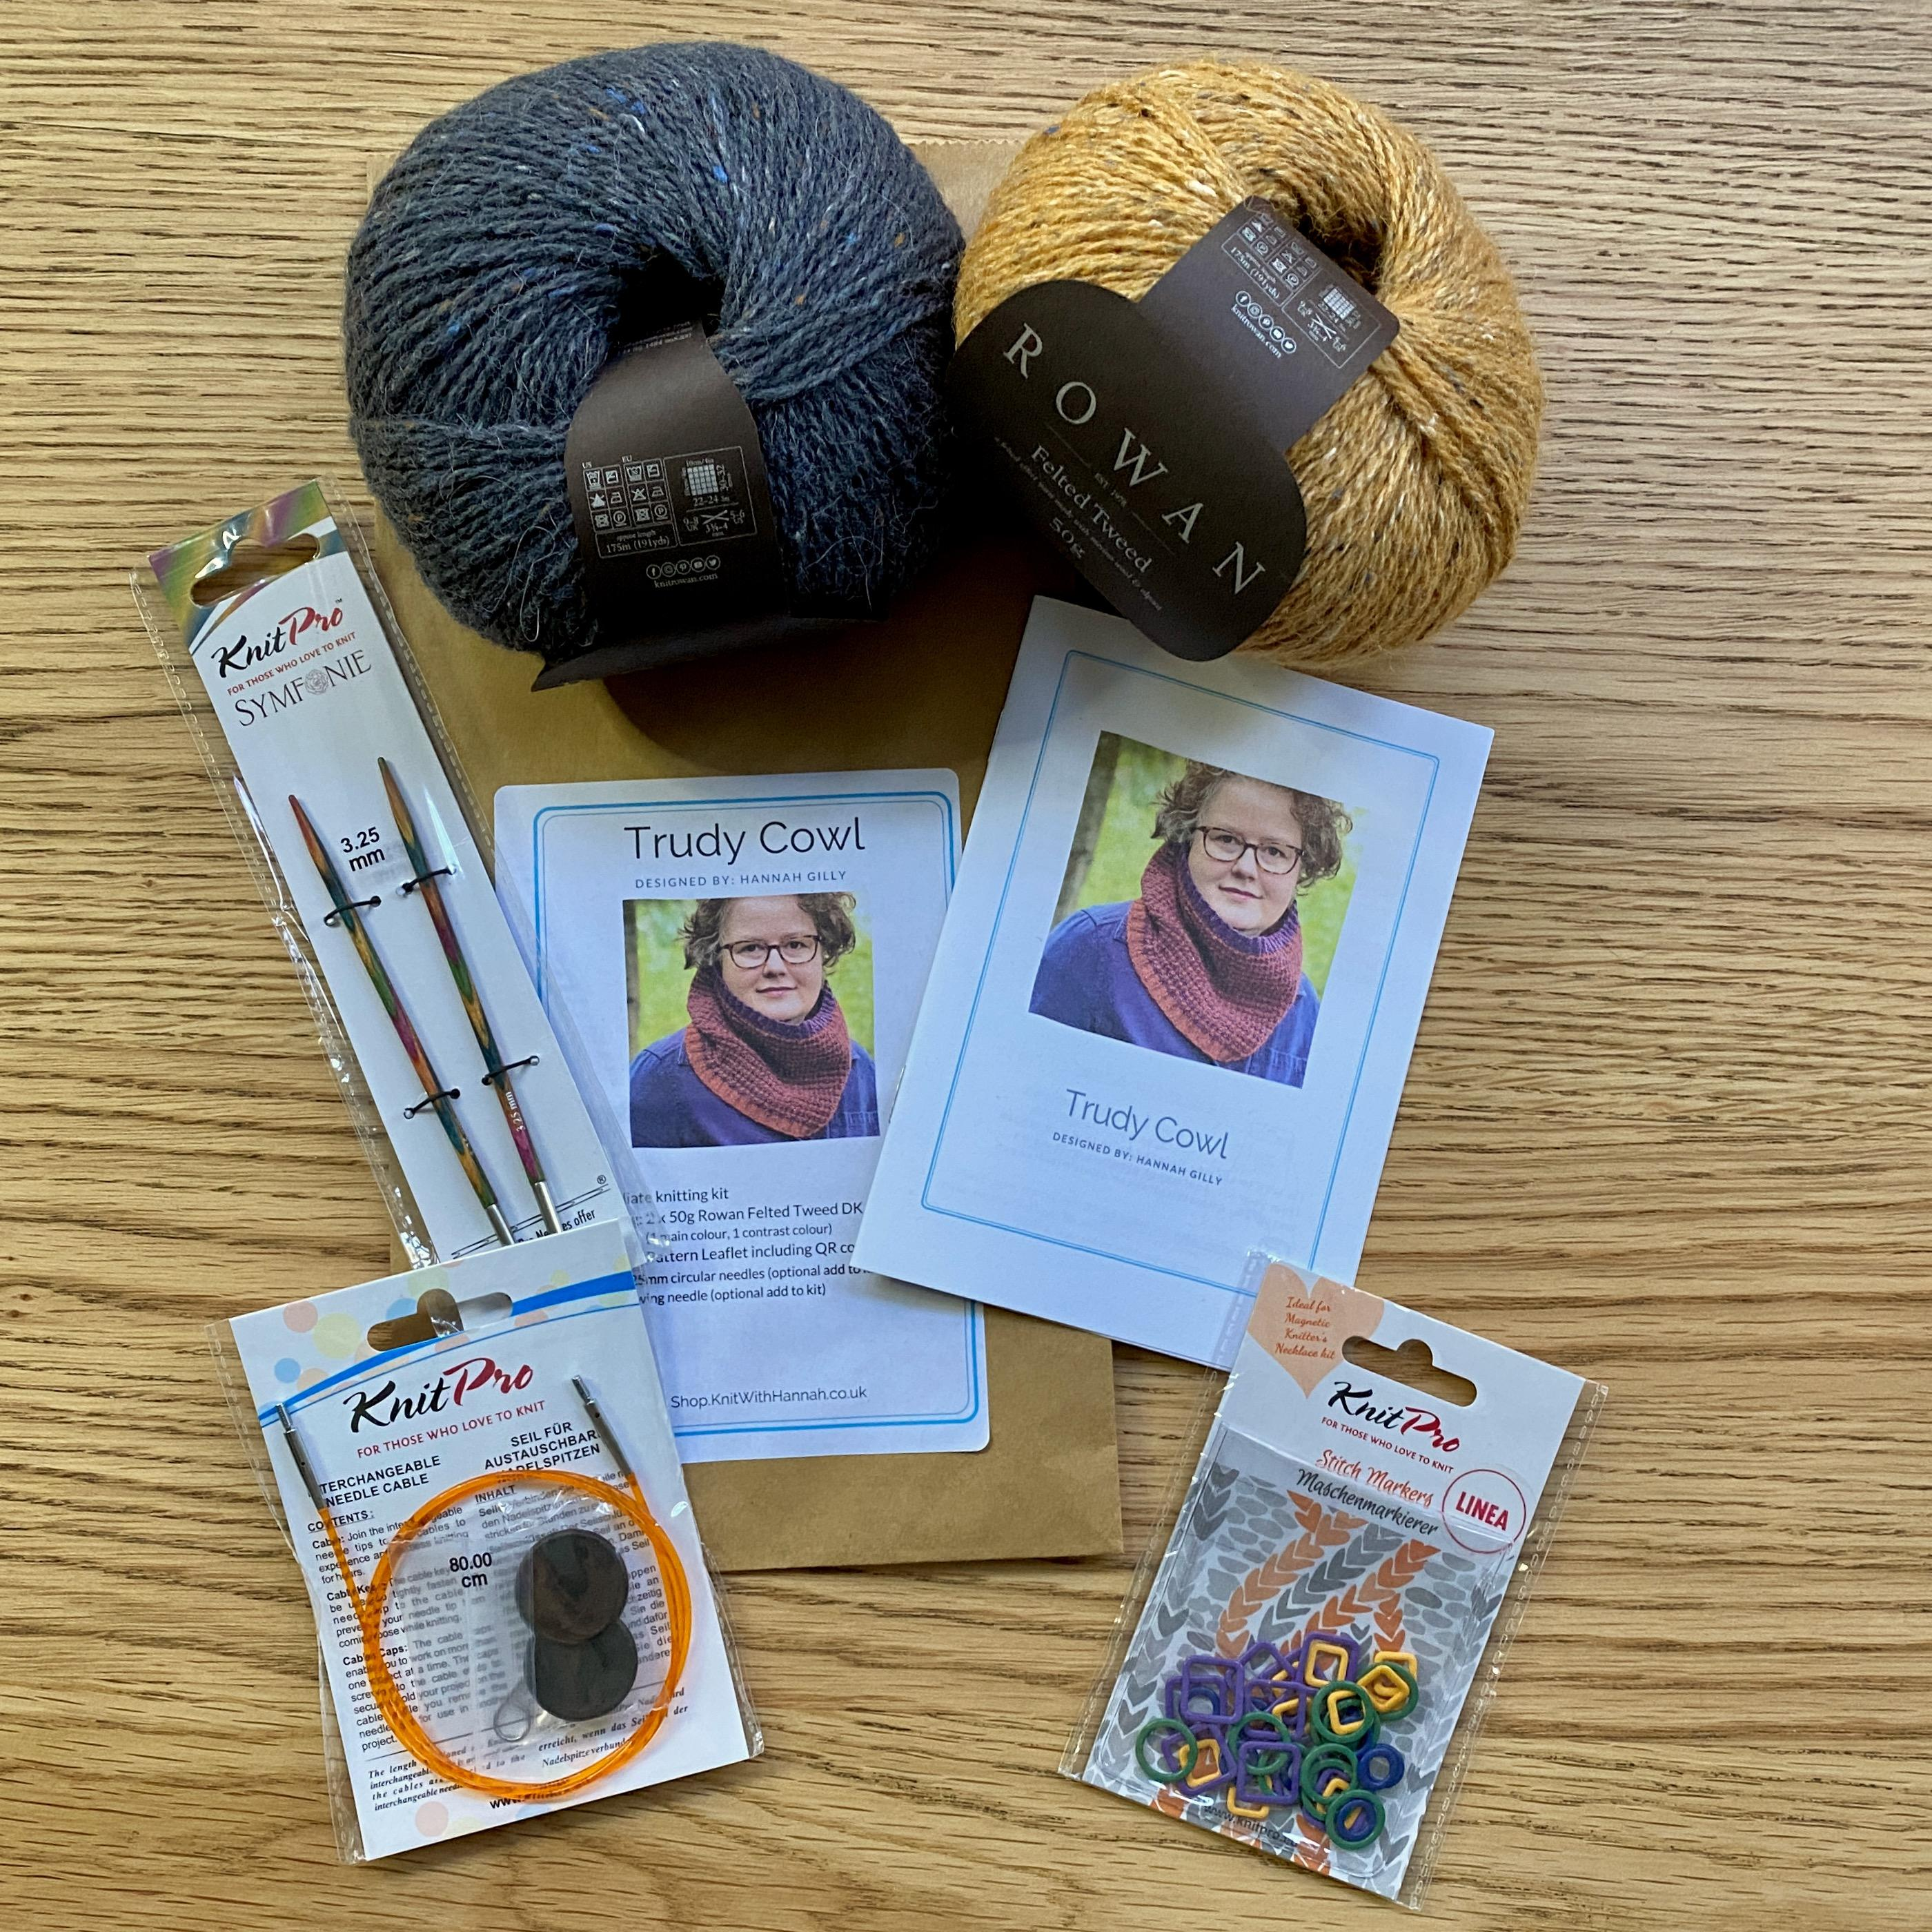 Turdy Cowl Knitting Kit open on wooden table, with bamboo knitting needles, and pink heart stitch markers